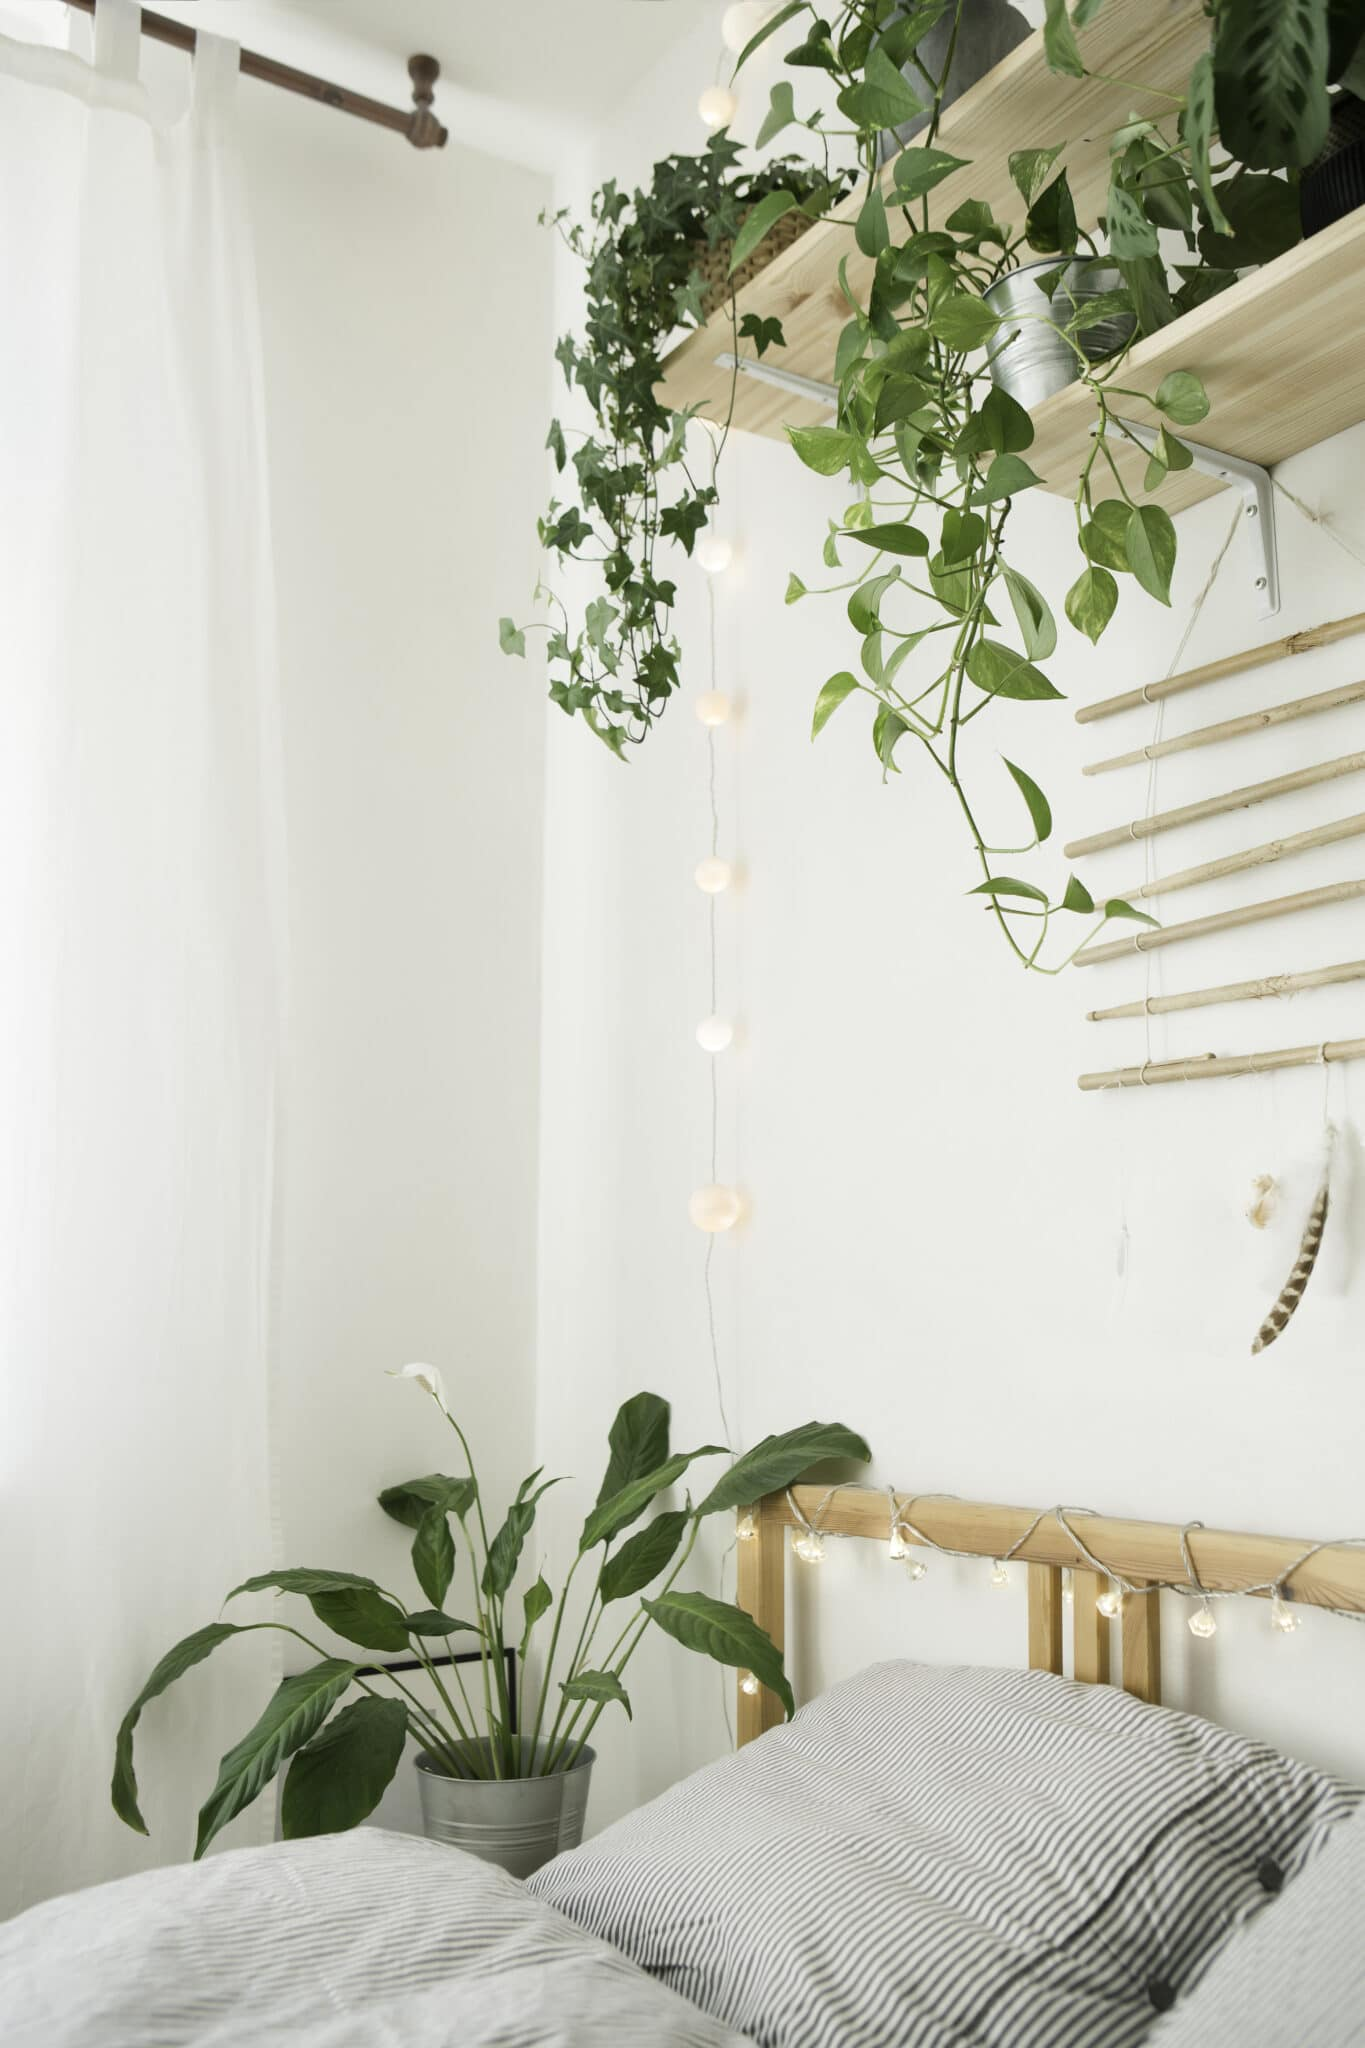 A bedroom with indoor plants to clean the air.